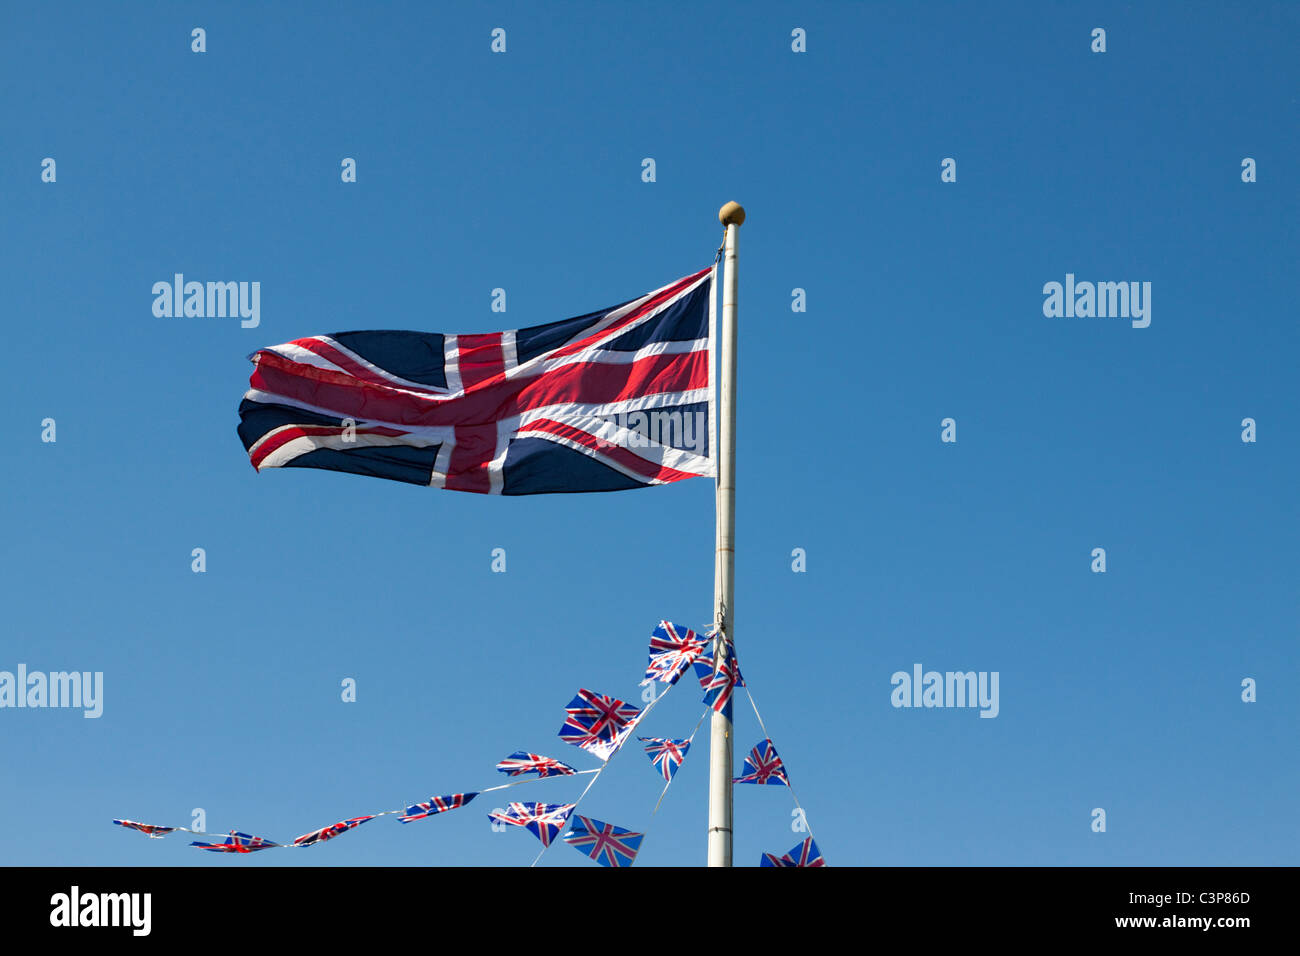 Union Jack flying from a flag pole - Stock Image